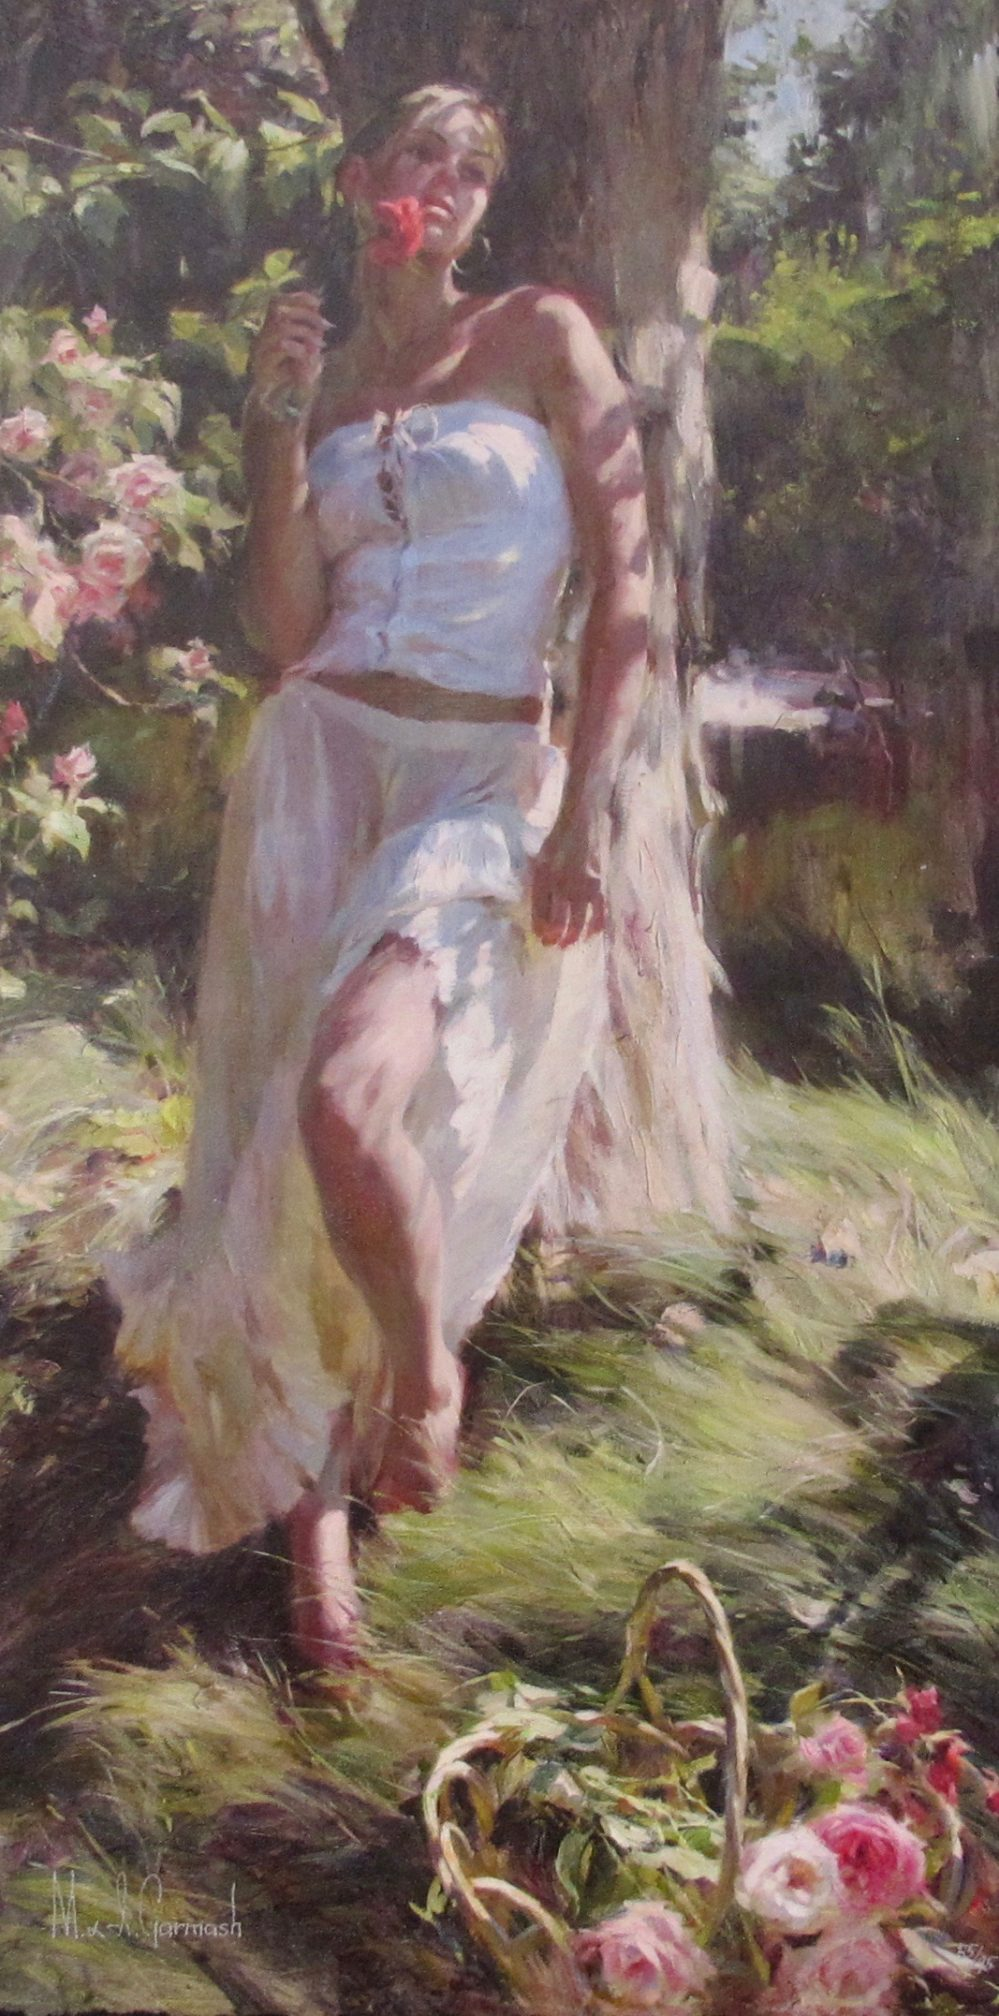 GARMASH Quiet Moment Hand Signed Limited Edition Giclee on Embellished Canvas